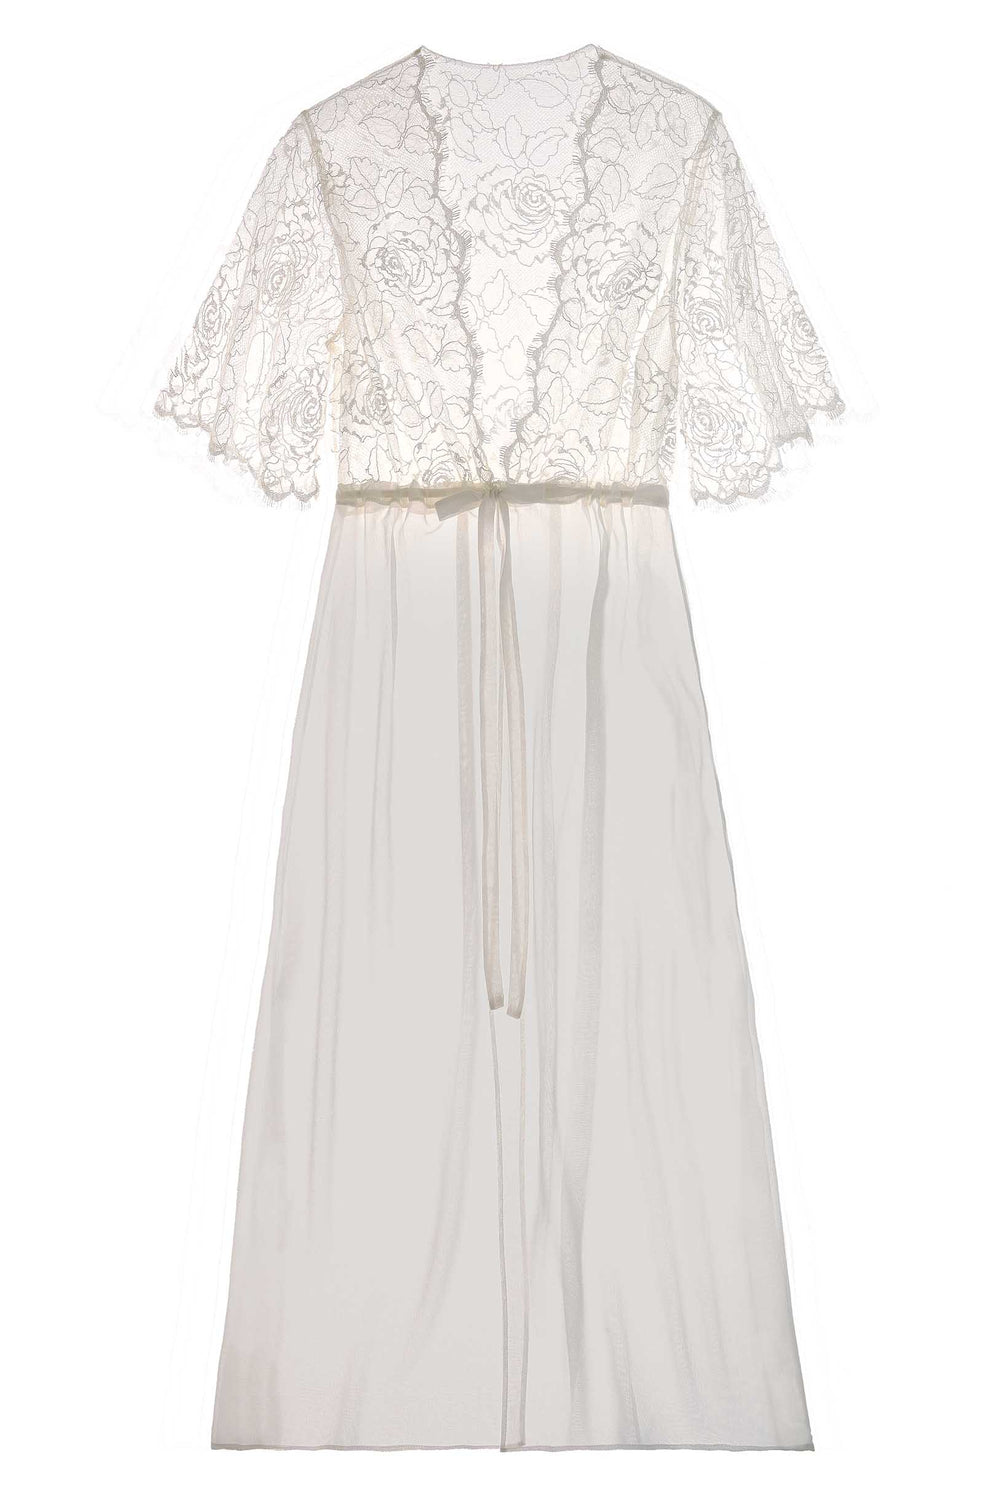 Rose French lace dressing robe in Ivory